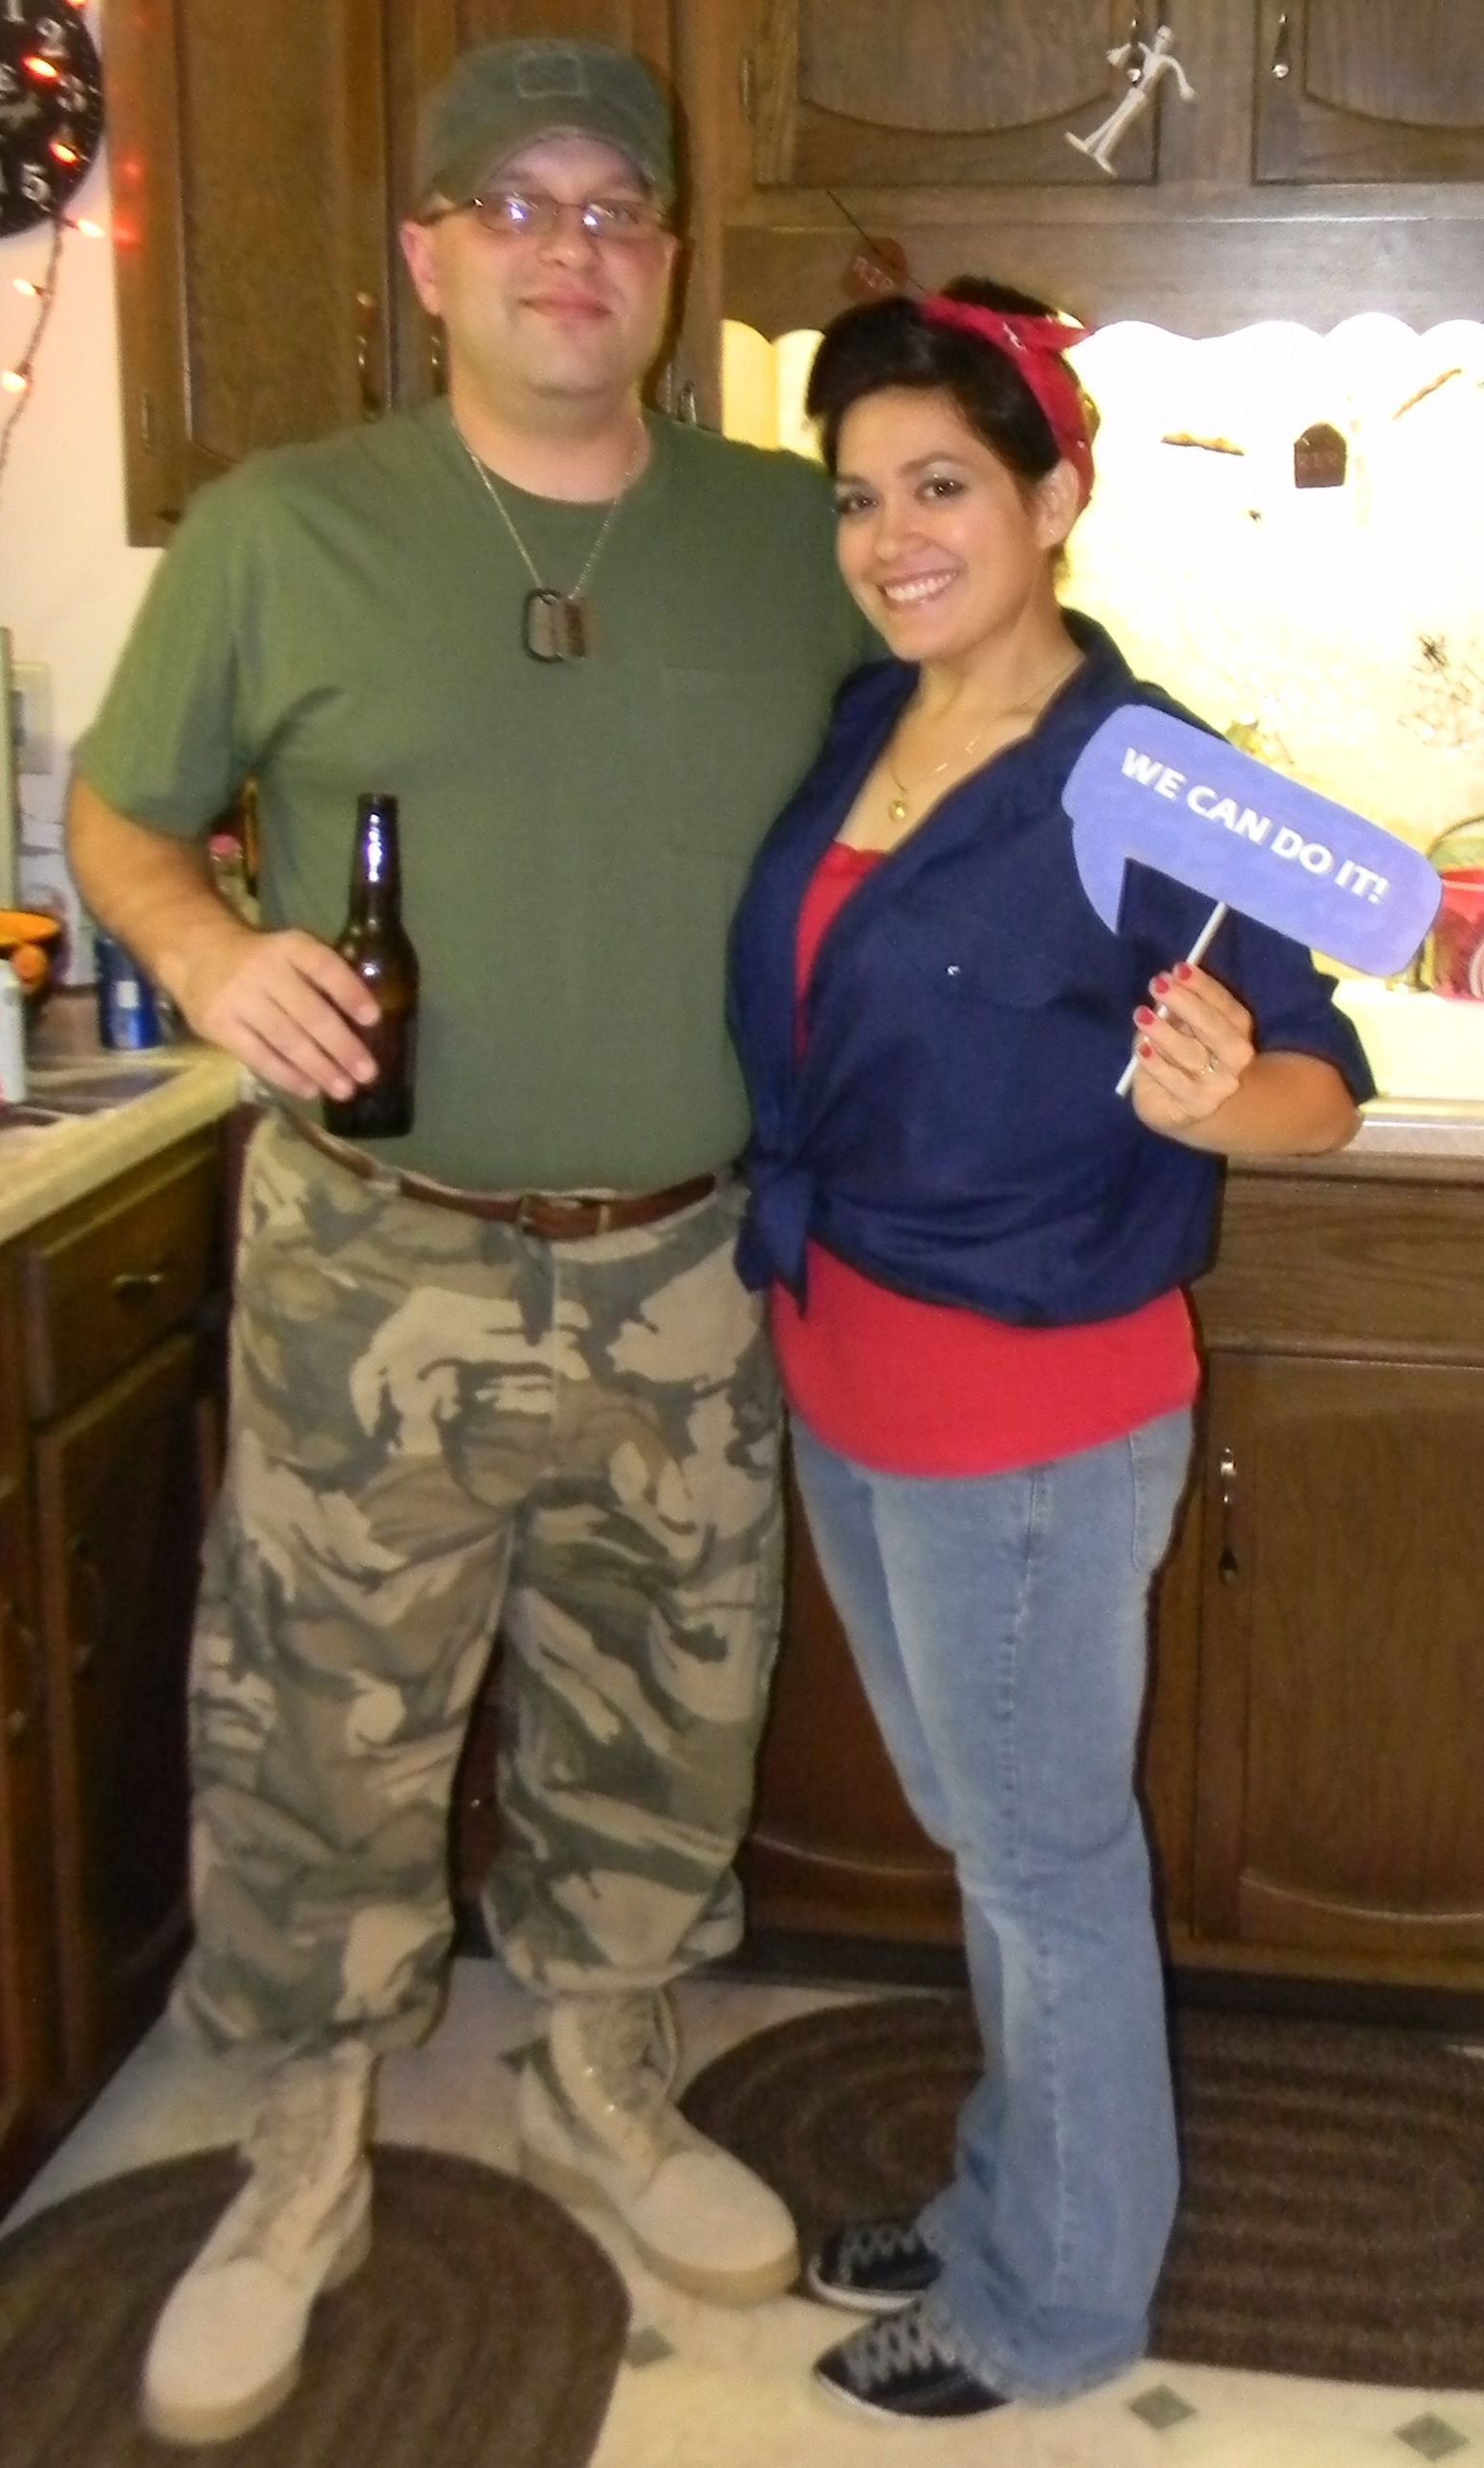 rosie the riveter halloween costume diy couples costume rosie the riveter and soldier - Rosie The Riveter Halloween Costume